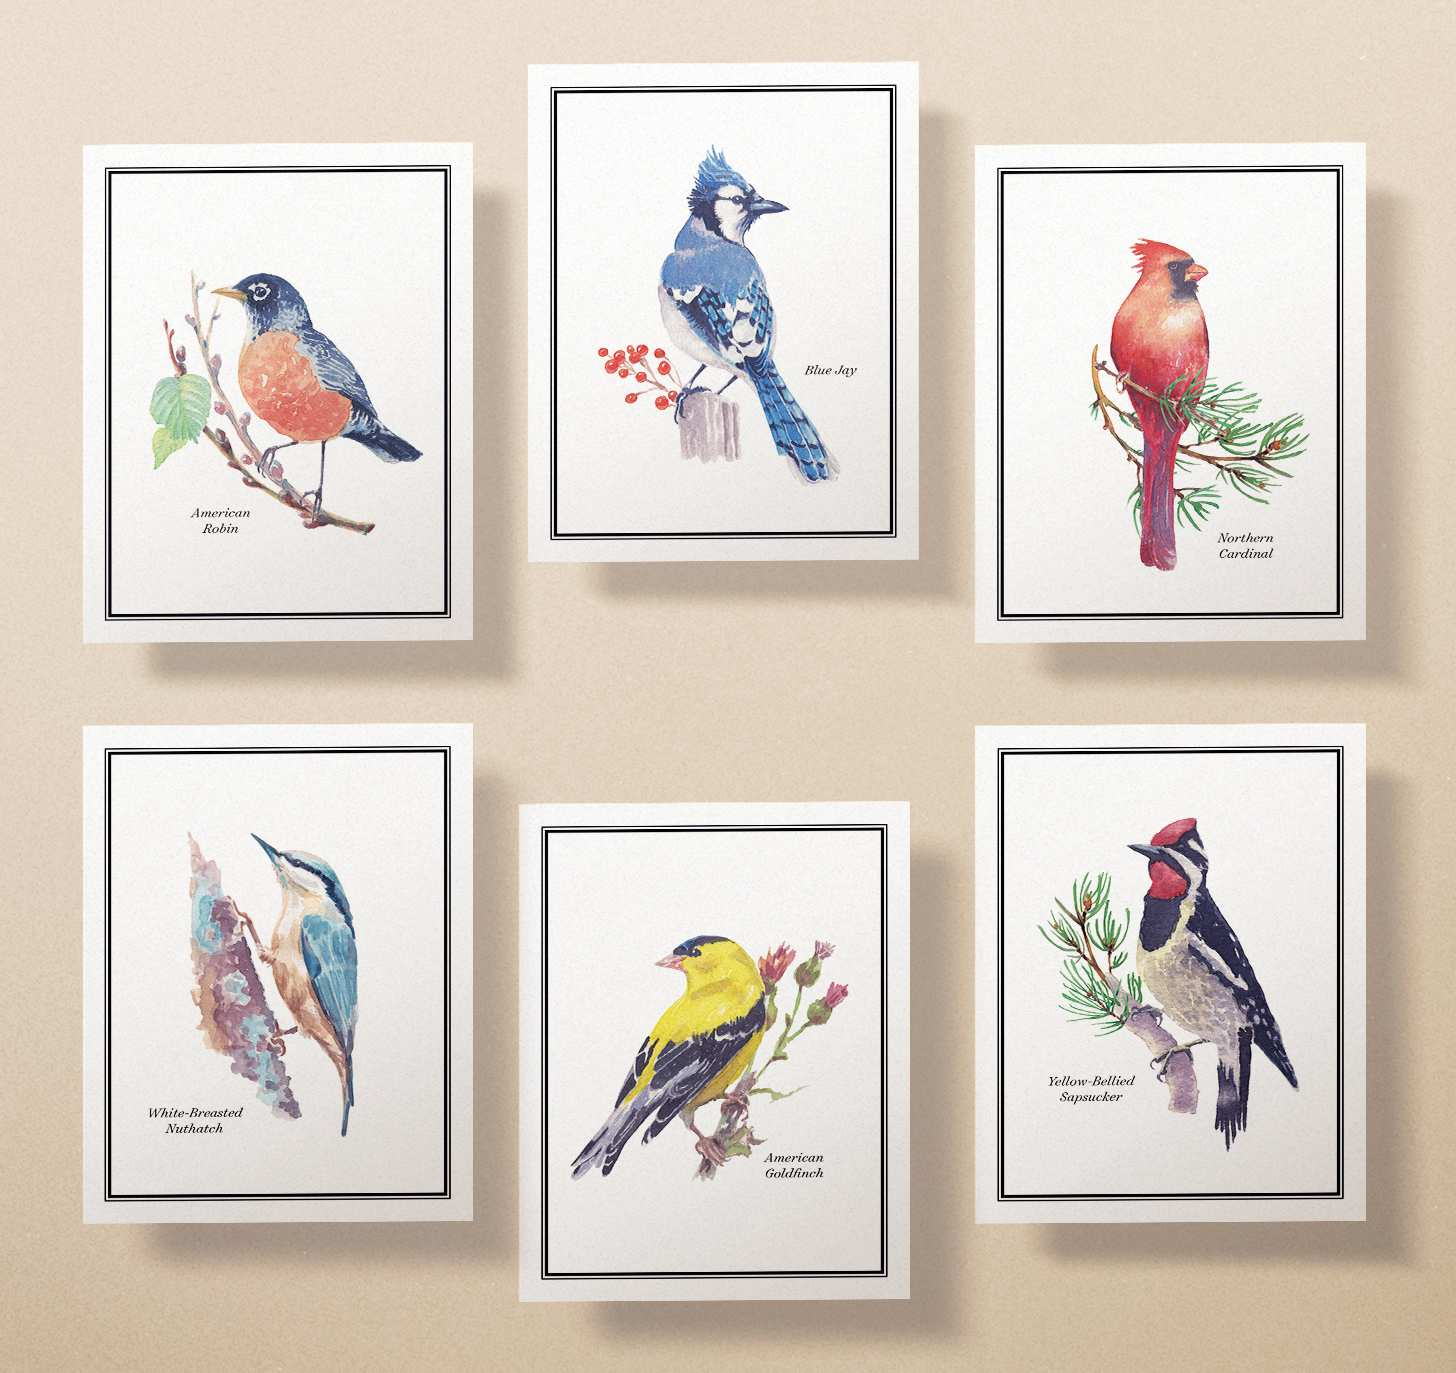 Six cards with robin, cardinal, white-breasted nuthatch, blue jay, yellow-bellied sapsucker, and goldfinch designs